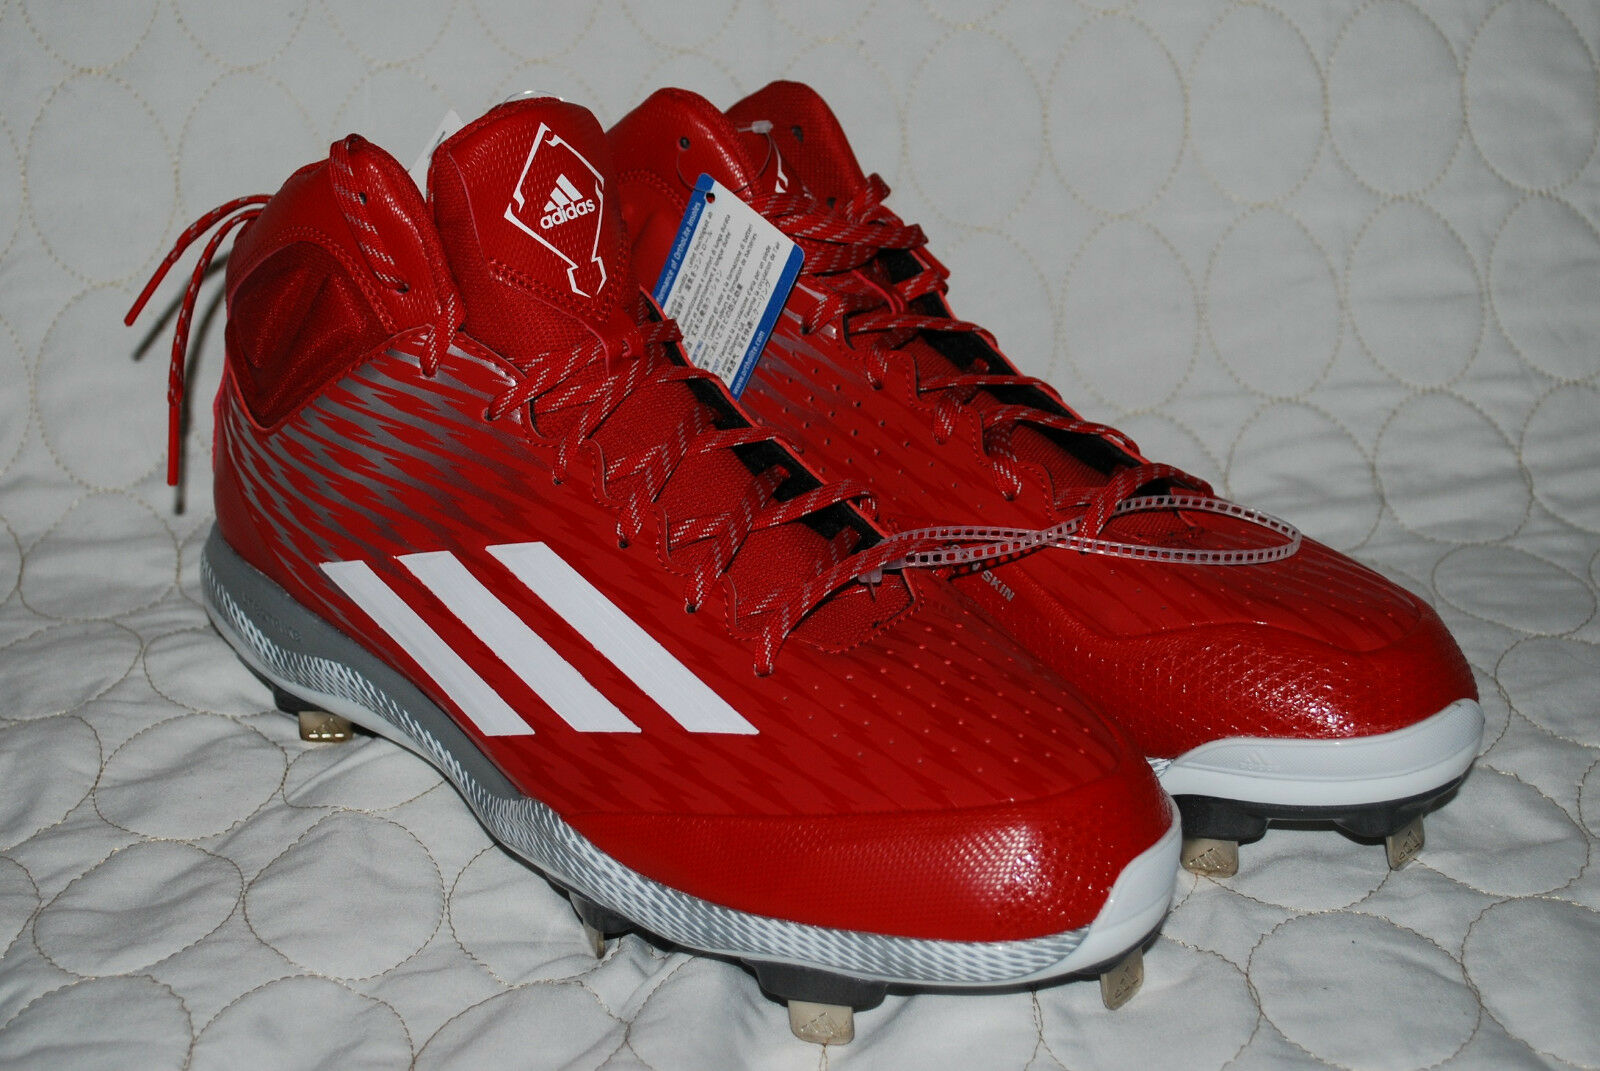 Adidas Baseball Football Soccer Cleats Uomo Size 14 New *Just Give Your Offer*